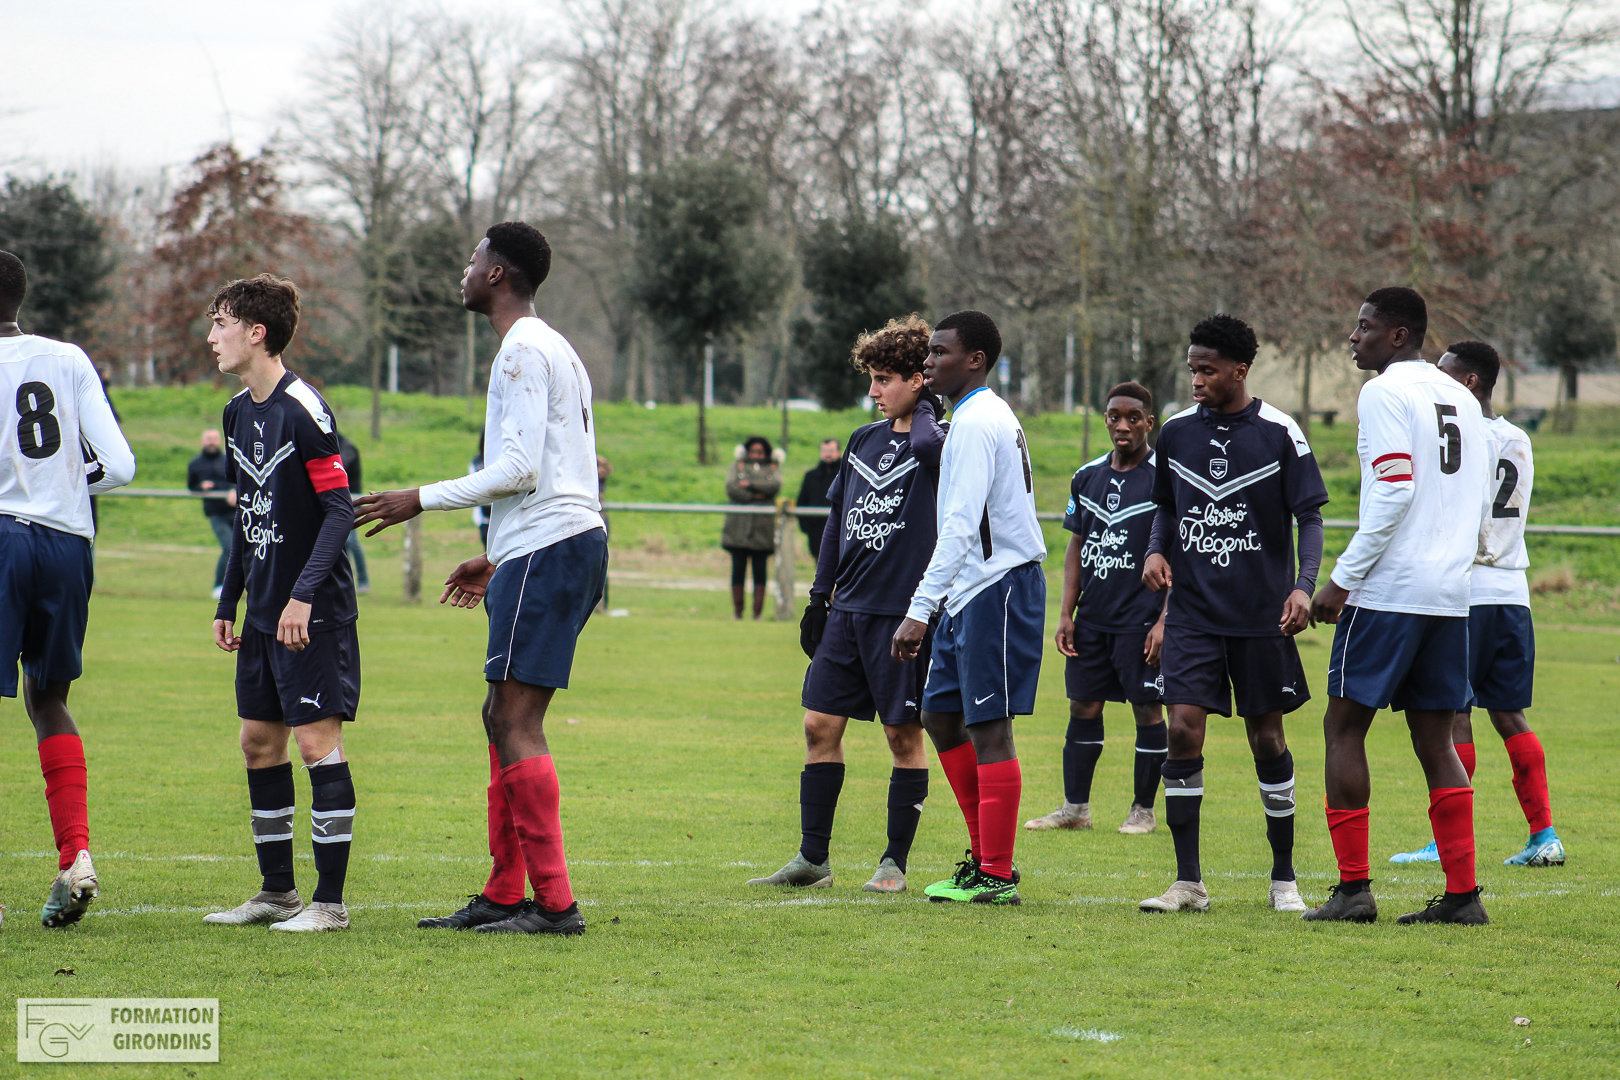 Cfa Girondins : Gros programme ce week-end - Formation Girondins